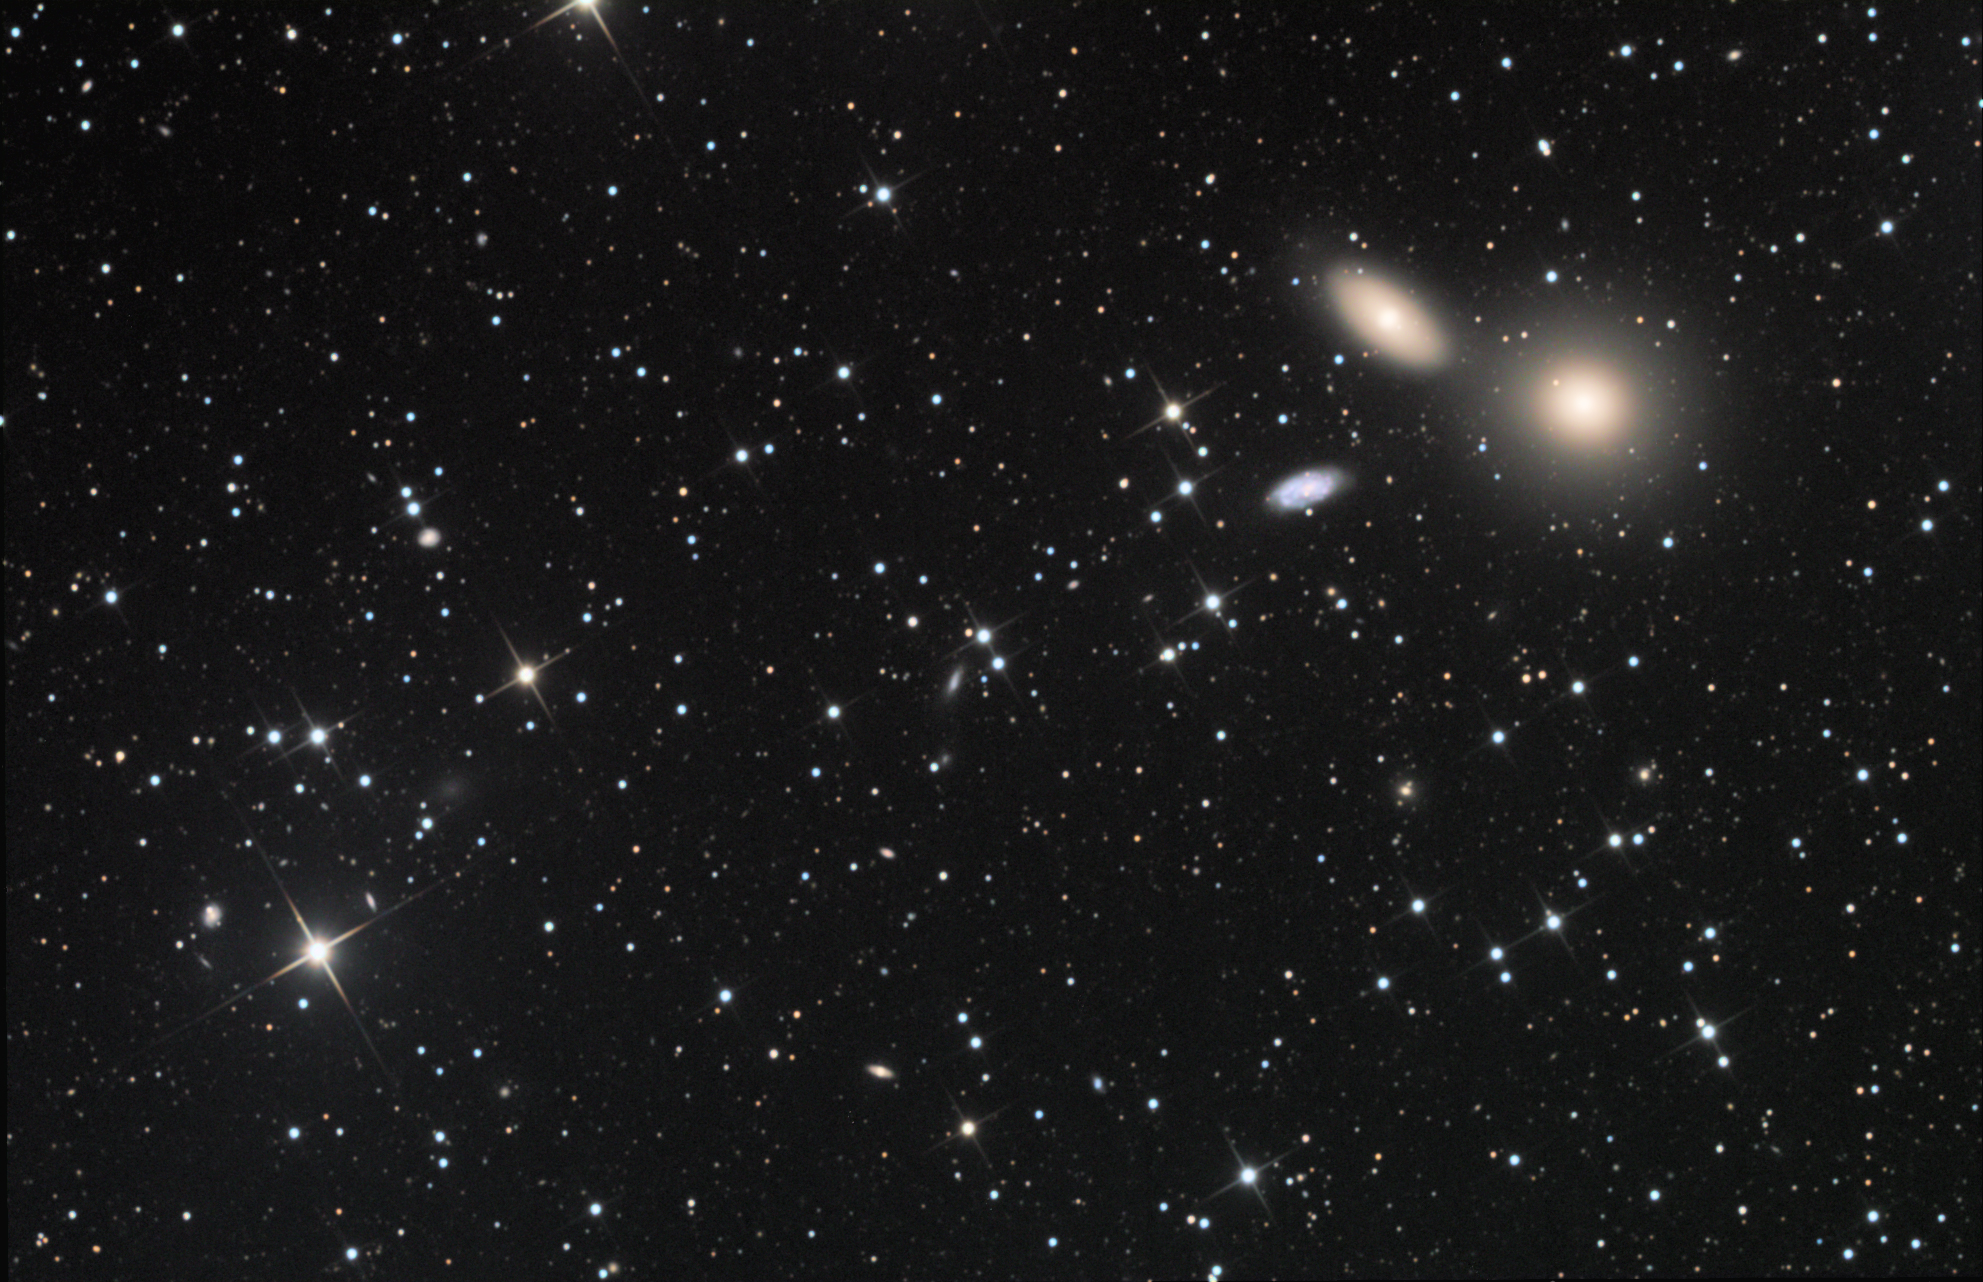 M105 Elliptical galaxy in Leo